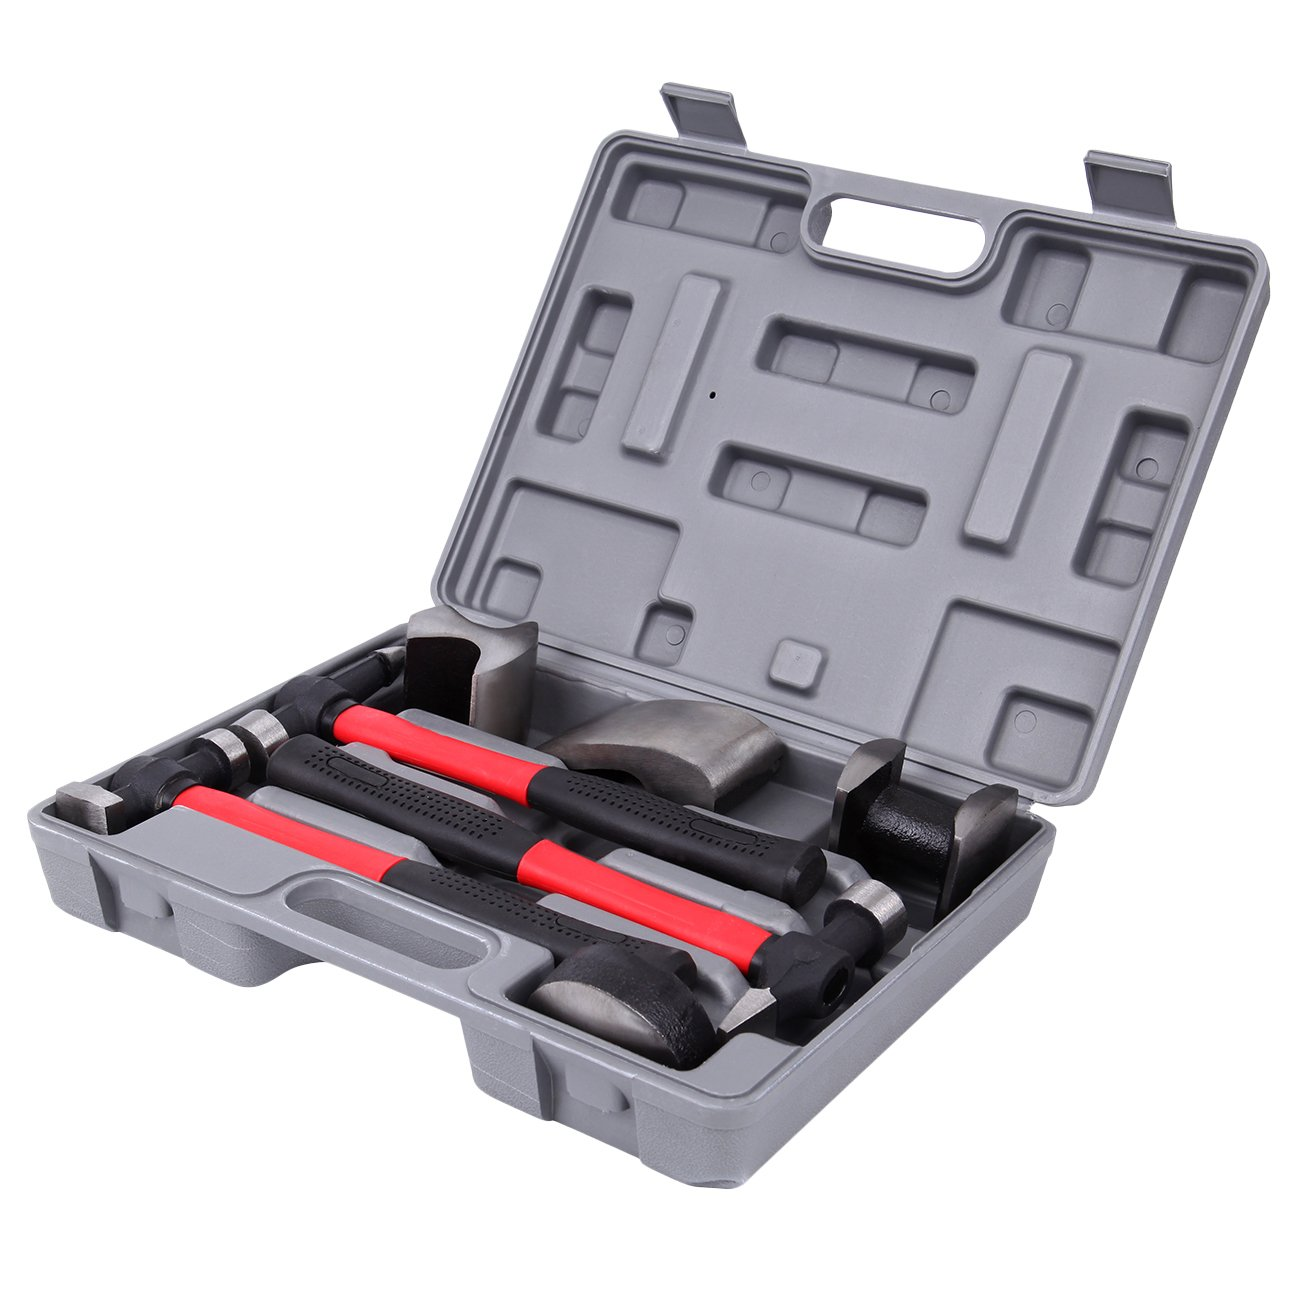 Ambienceo 7Pcs Panel Beating Hammers Dollies Auto Body Shaping and Forming Repair Kit Tool Set with Case